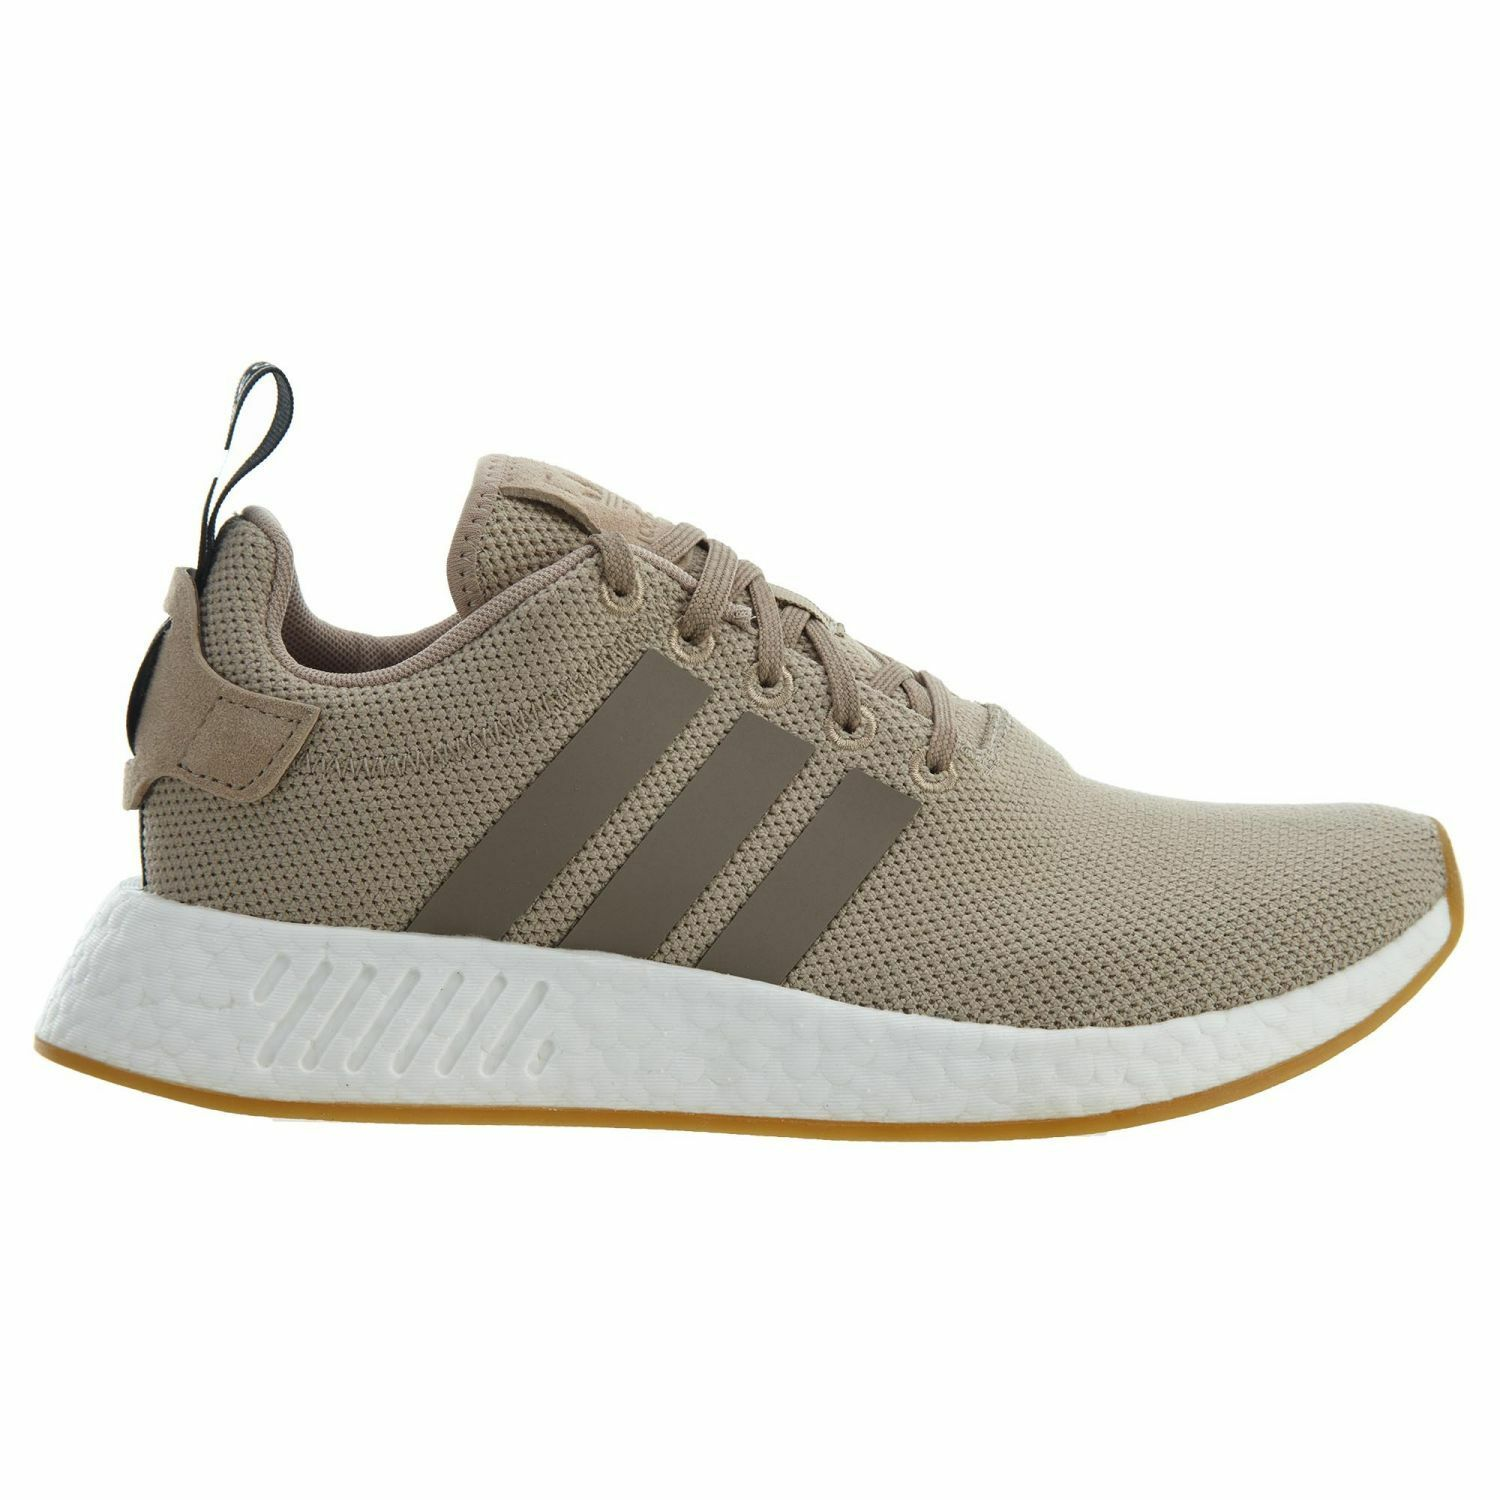 Adidas NMD_R2 Mens BY9916 Trace Khaki Brown Knit Boost Running Shoes Size 11